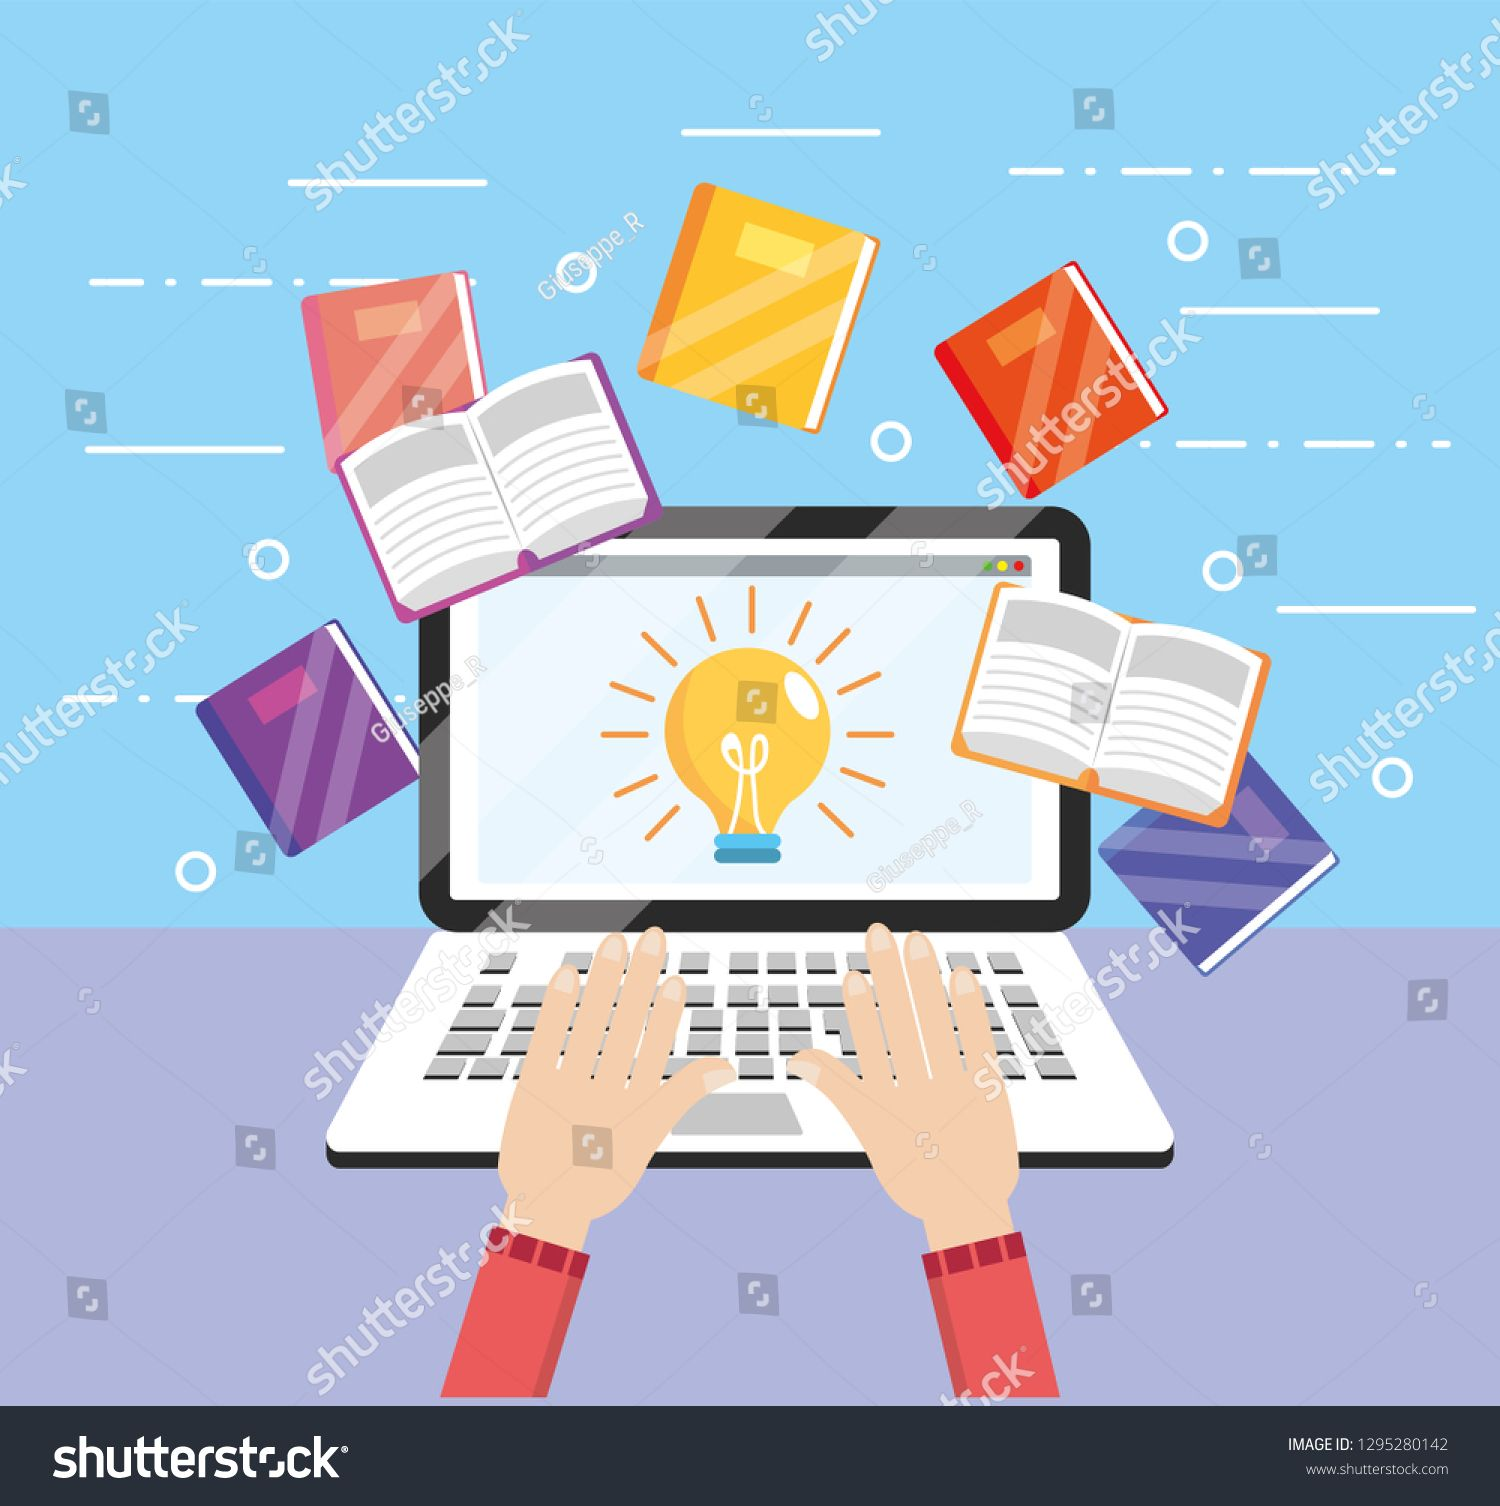 Elearning Laptop Technology With Education Book Ad Affiliate